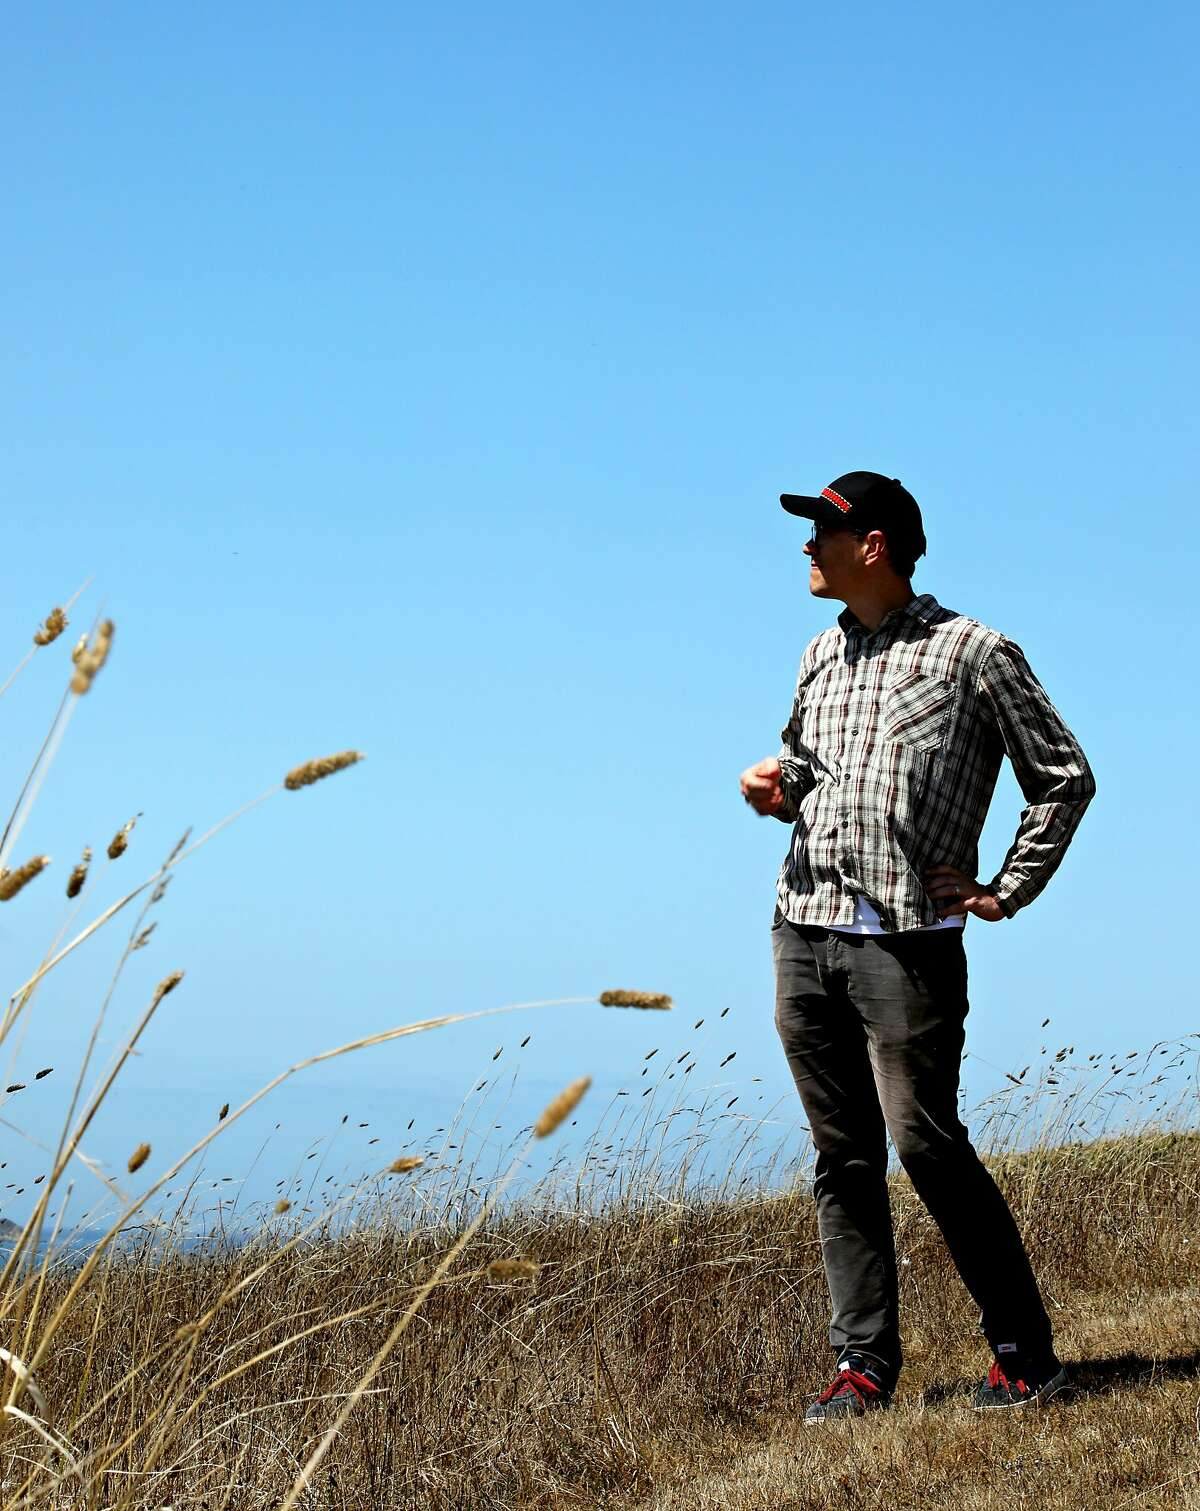 Tsim Schneider, 40, assistant professor, department of anthropology, University of California, Santa Cruz, poses for a portrait on Tom's Point in Tomales Bay, Calif., on Thursday, August 29, 2019. The Coast Miwok and Southern Pomo Indians of Marin County were not exterminated by Spanish and American colonists. They not only survived colonization, but they preserved and passed on their culture and traditions for many decades, often living independently in their old stomping grounds while an often hostile culture grew around them, according to a study by Schneider and Lee Panich (not pictured), of Santa Clara University. They found from artifacts recovered from Tom's Point, in Tomales Bay, and other sites in Marin County that the native people persisted despite the missions and discriminatory policies by the federal government. In many ways, their legacy lives on in society today, according to Schneider, a member of the Federated Indians of Graton Rancheria, the federally recognized tribe of Coast Miwok and Southern Pomo people.